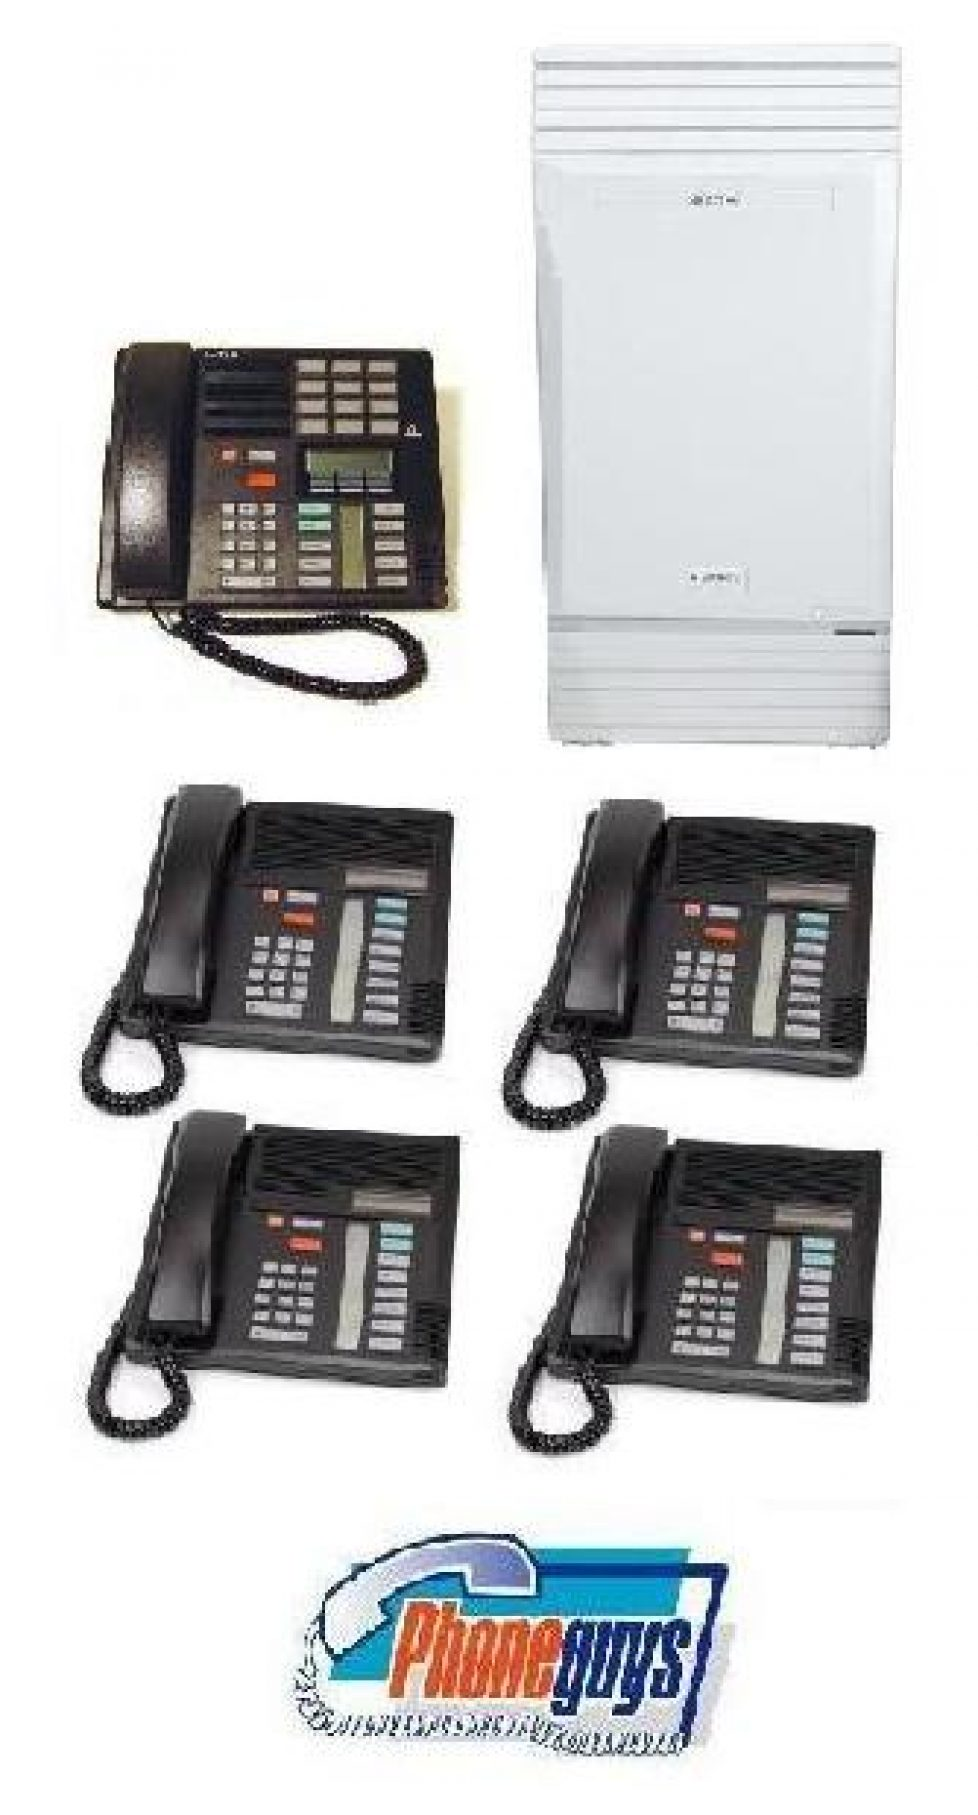 Modular ICS with 1-M7310 4-M7208 Phones